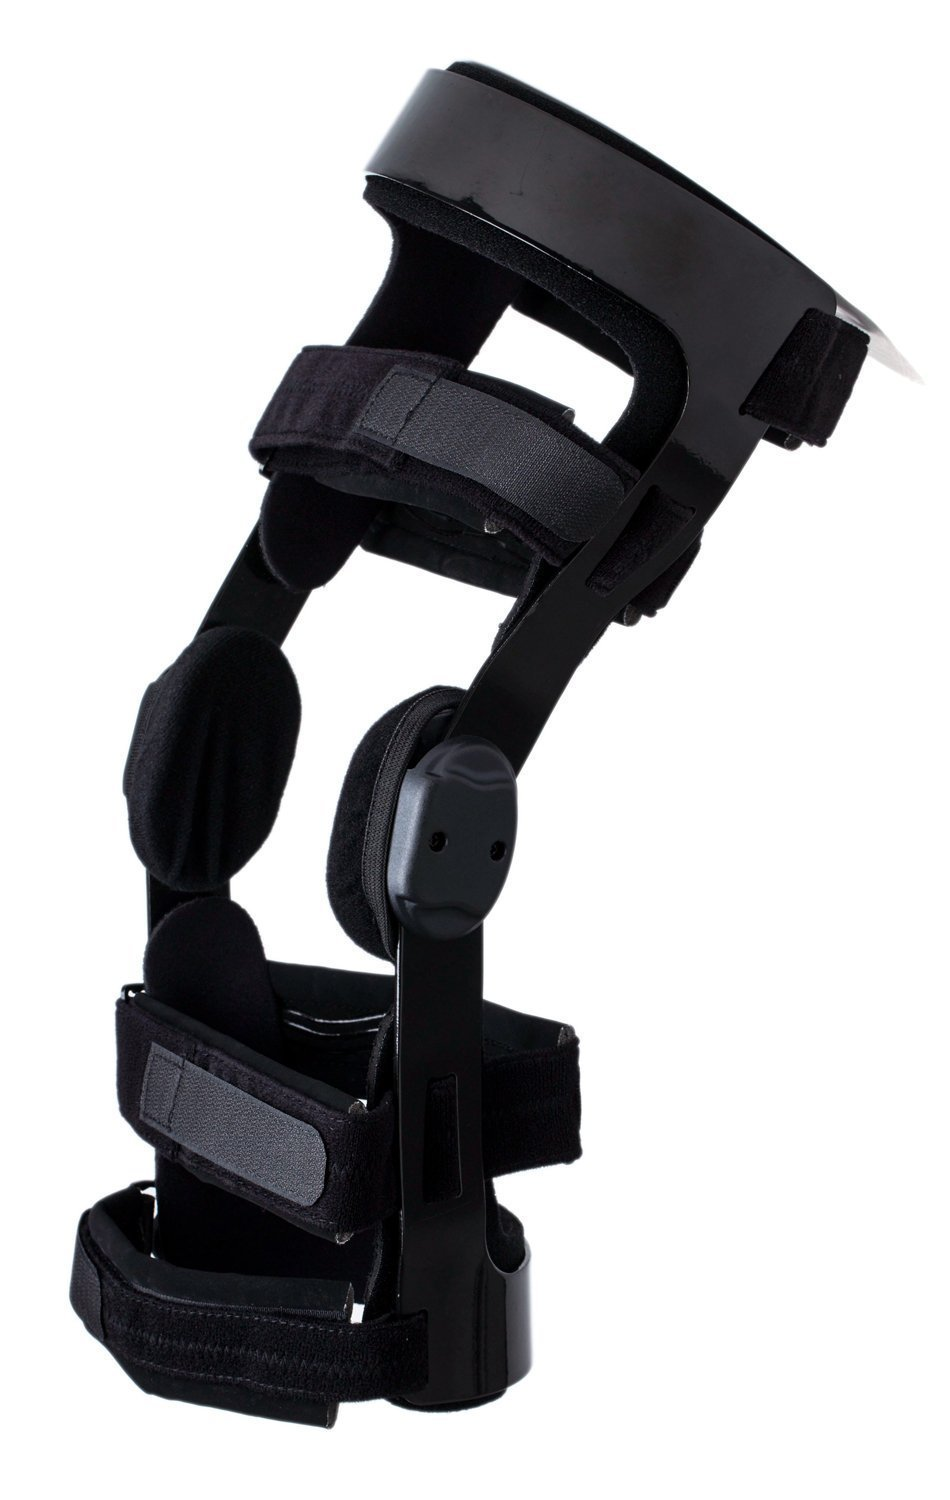 Orthomen Knee Brace for ACL/Ligament/Sports Injuries, Mild Osteoarthritis(OA) & for Preventive Protection from Knee Joint Pain/Degeneration (L/Left)